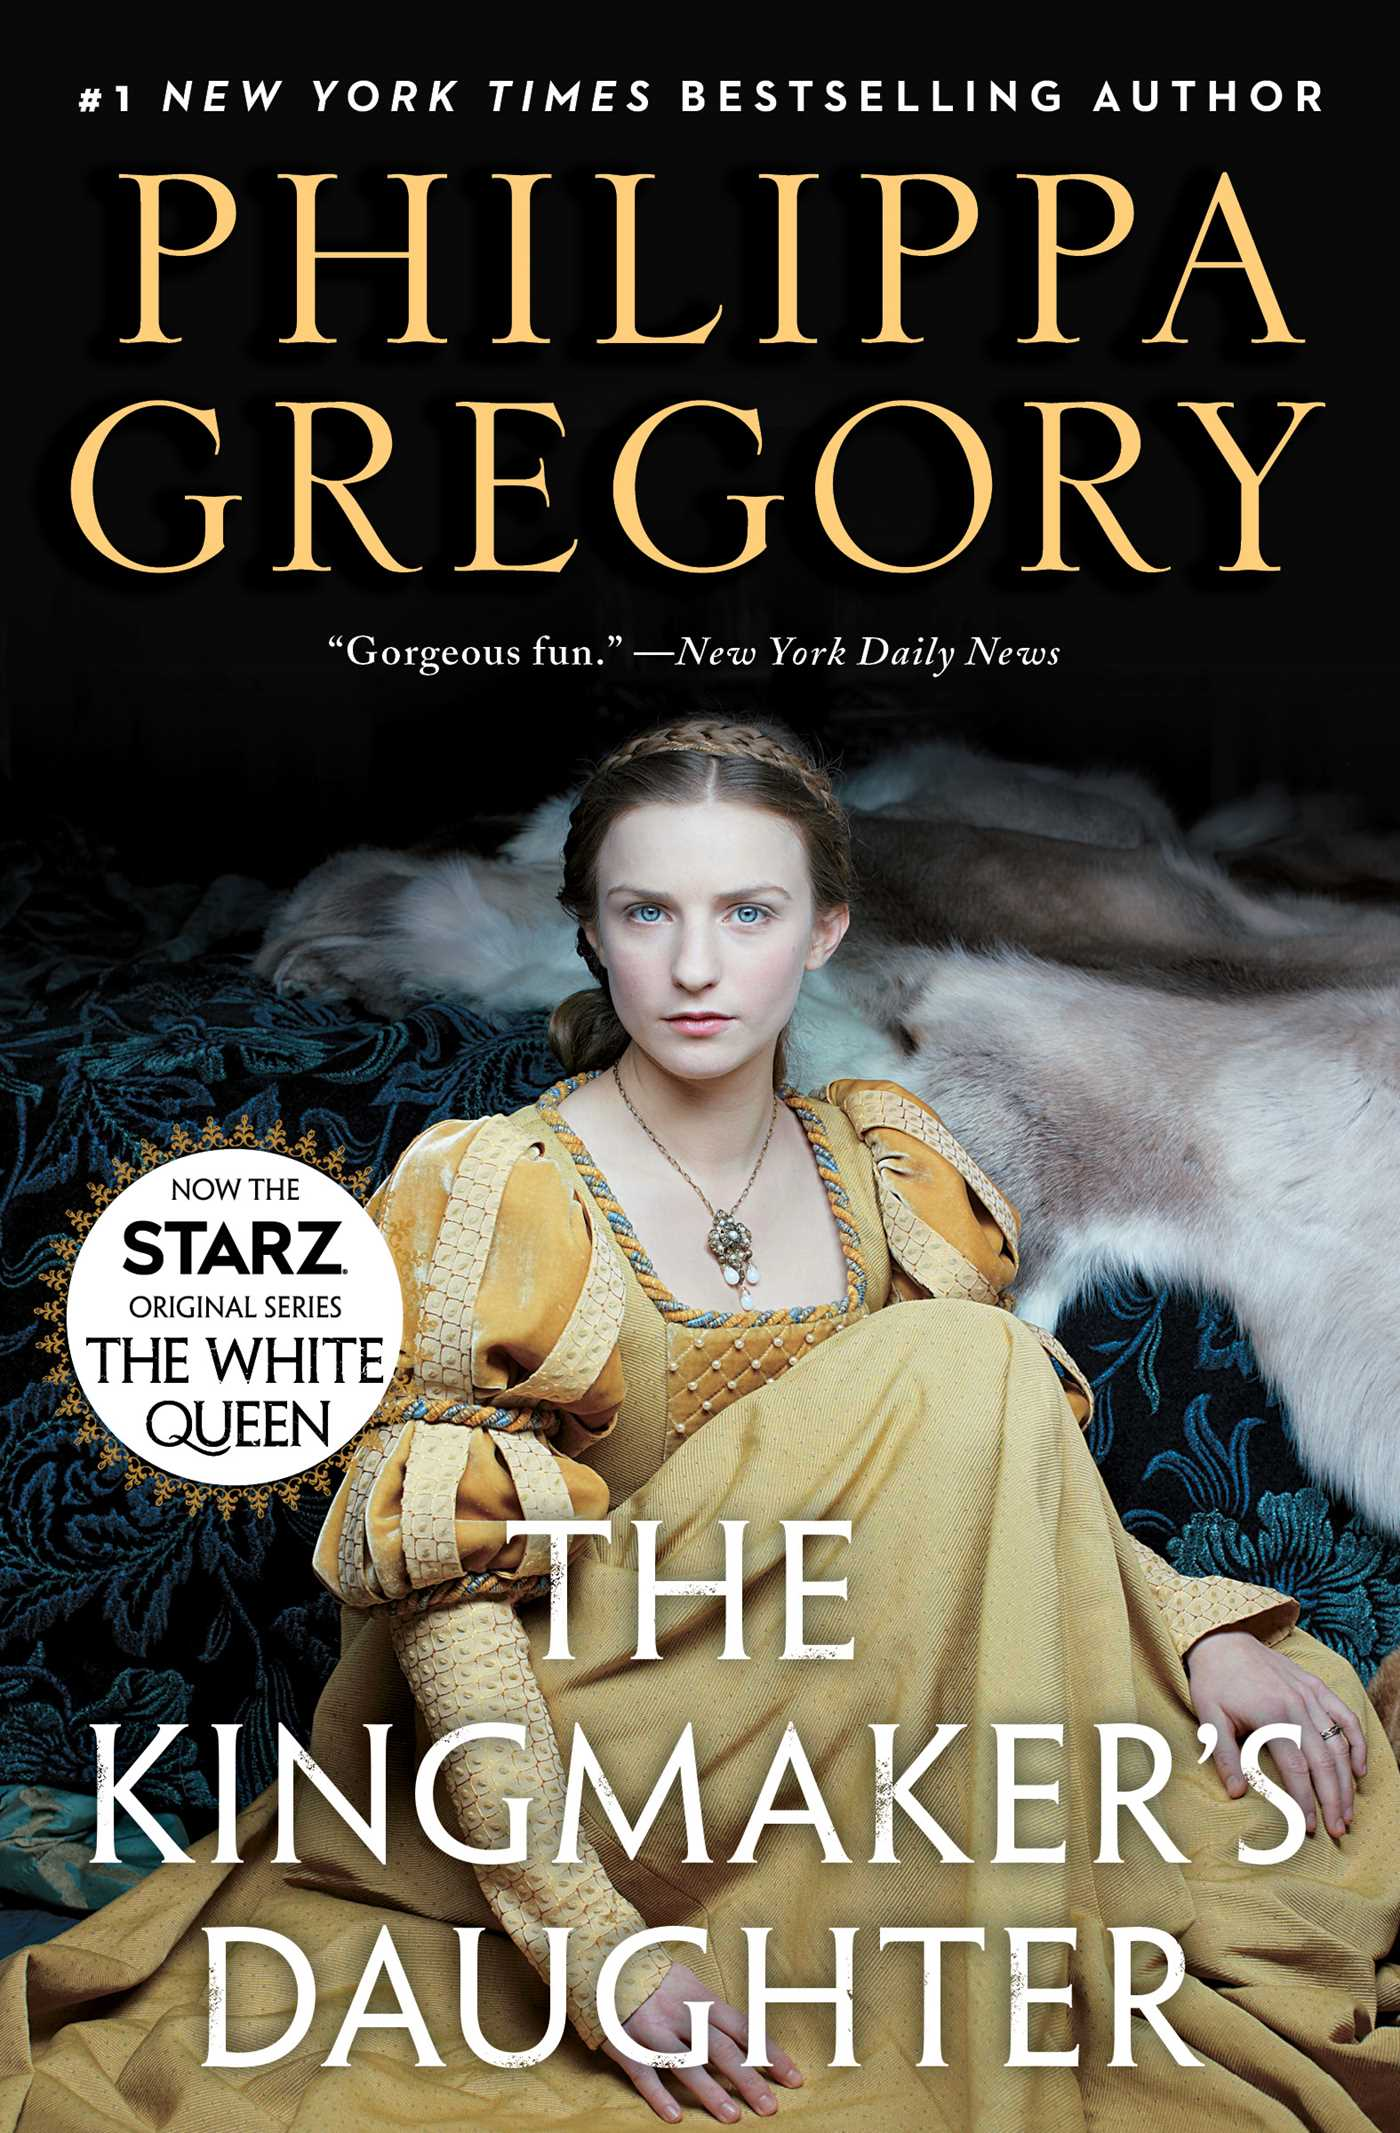 The kingmakers daughter 9781476746326 hr